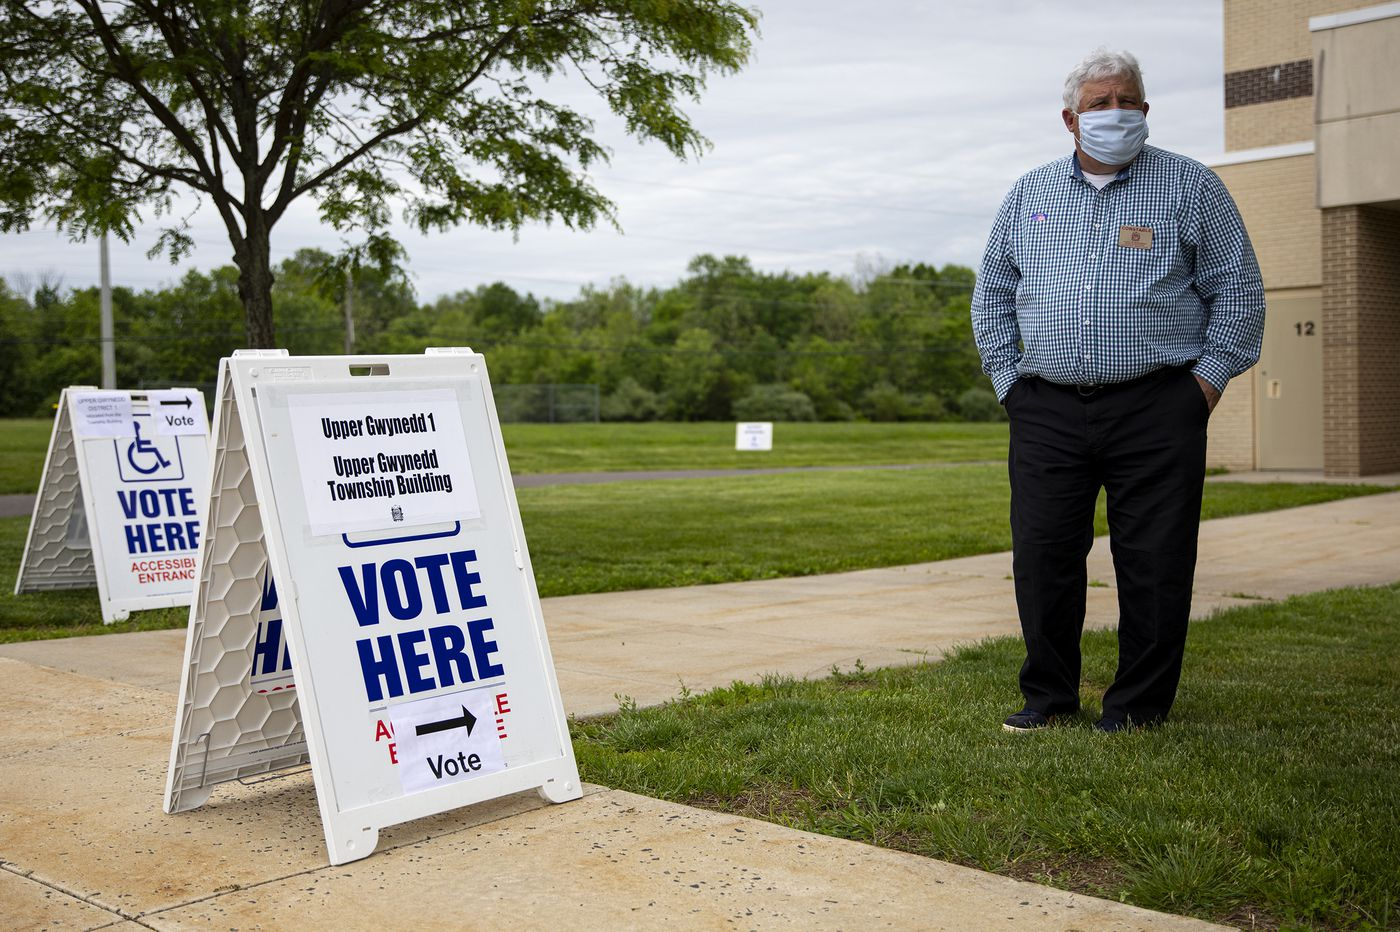 How to become a poll worker for the November election (and make up to $250 to do it)